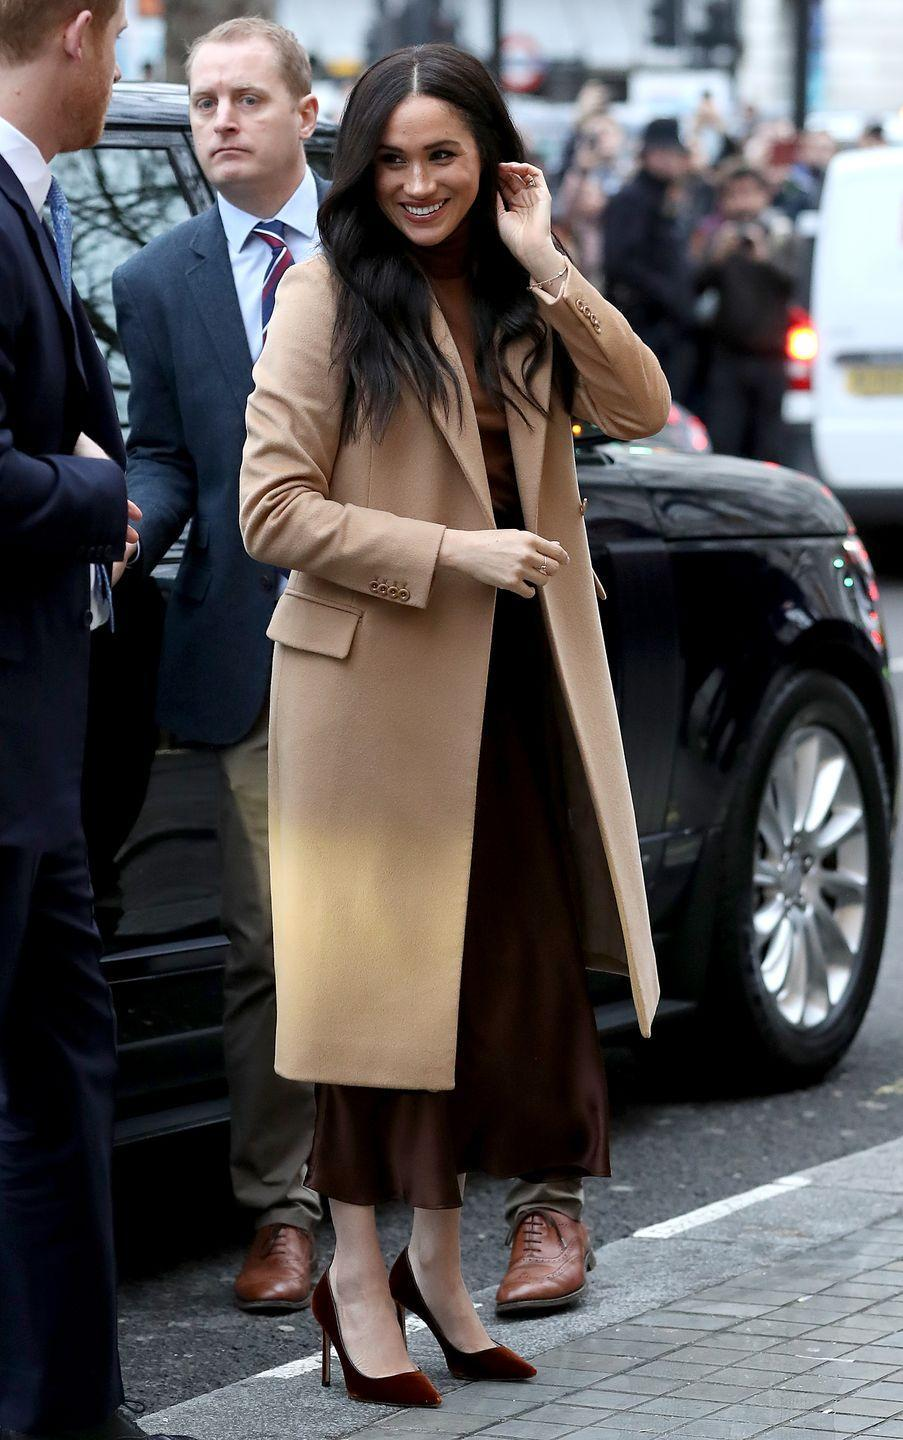 """<p>For the visit, Meghan wrapped up in a Reiss <a href=""""https://www.elle.com/uk/fashion/what-to-wear/articles/g31087/best-camel-coats-to-buy-now-high-street-topshop-mango-warehouse/"""" rel=""""nofollow noopener"""" target=""""_blank"""" data-ylk=""""slk:camel coat"""" class=""""link rapid-noclick-resp"""">camel coat</a>, roll neck tan jumper, a <a href=""""https://www.net-a-porter.com/gb/en/product/1147632?gclsrc=aw.ds&gclsrc=aw.ds&cm_mmc=Google-ProductSearch-UK--c-_-NAP_EN_UK_PLA-_-NAP+-+UK+-+GS+-+Sale+-+1MD+-+Designer+-+FW19+-+CSS--Sale+-+Clothing_INTL&gclid=Cj0KCQiA9dDwBRC9ARIsABbedBN7UEdmY_HPJszYZ8jikEAxzuCUwTaP-8dzO1UcL2QiyUbav1hoGJMaAureEALw_wcB"""" rel=""""nofollow noopener"""" target=""""_blank"""" data-ylk=""""slk:Vince mahogany brown slip midi skirt"""" class=""""link rapid-noclick-resp"""">Vince mahogany brown slip midi skirt</a> and burgundy-coloured suede pumps by Jimmy Choo.</p><p>The visit to Canada House marked the royal's first with Prince Harry since their Christmas holidays spent in Canada in 2019. </p>"""